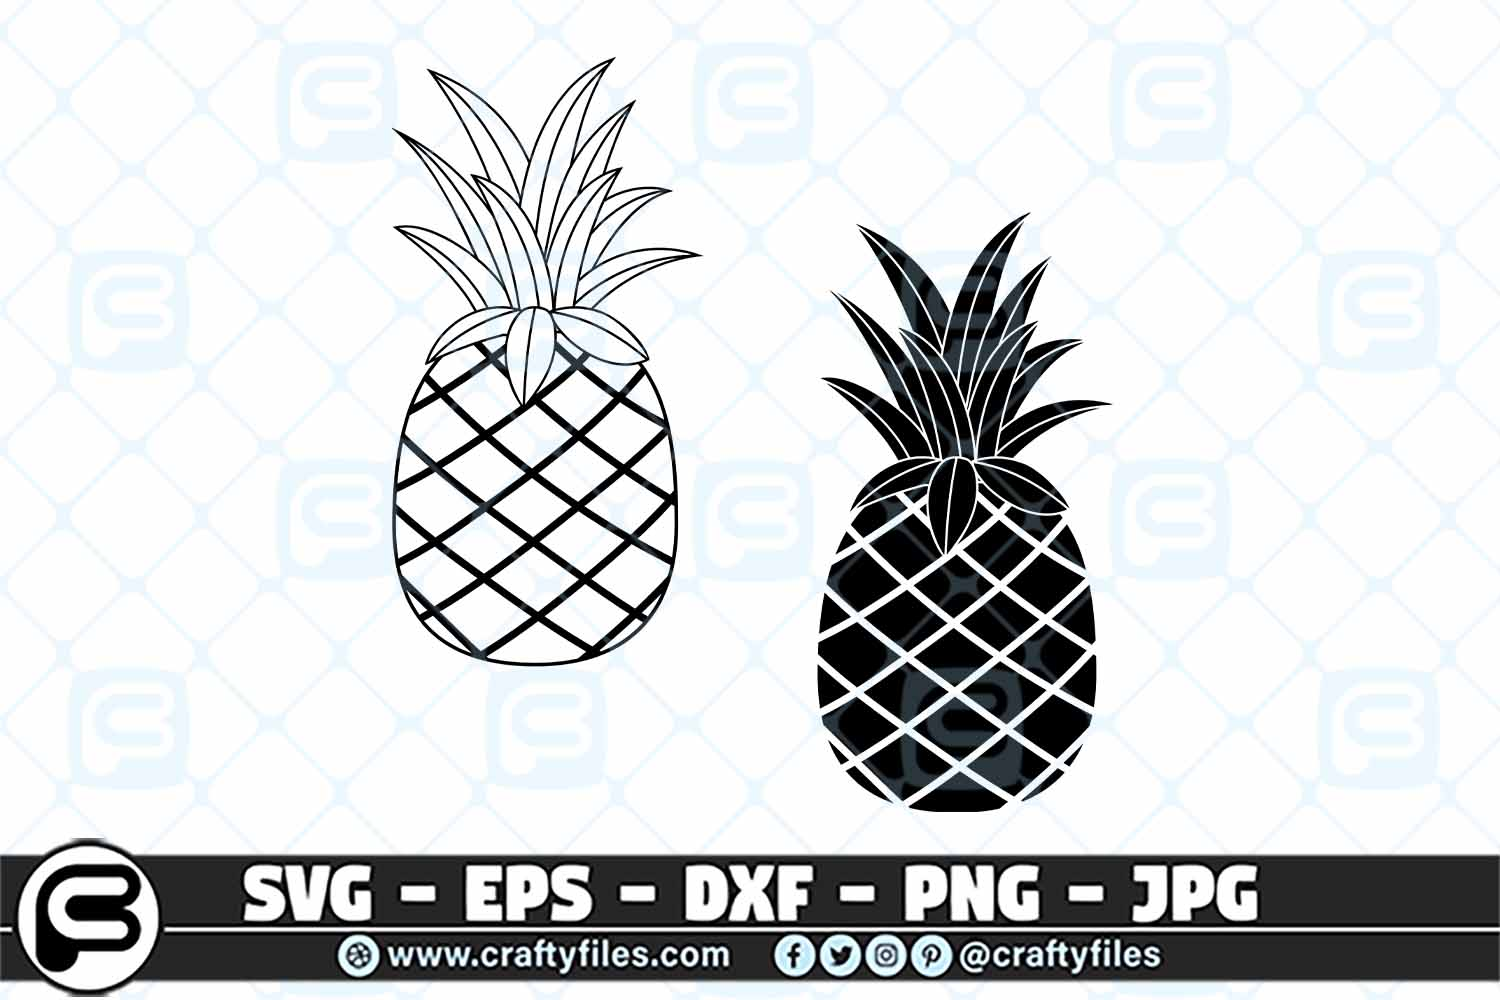 Download Free Ananas Pineapple Graphic By Crafty Files Creative Fabrica for Cricut Explore, Silhouette and other cutting machines.